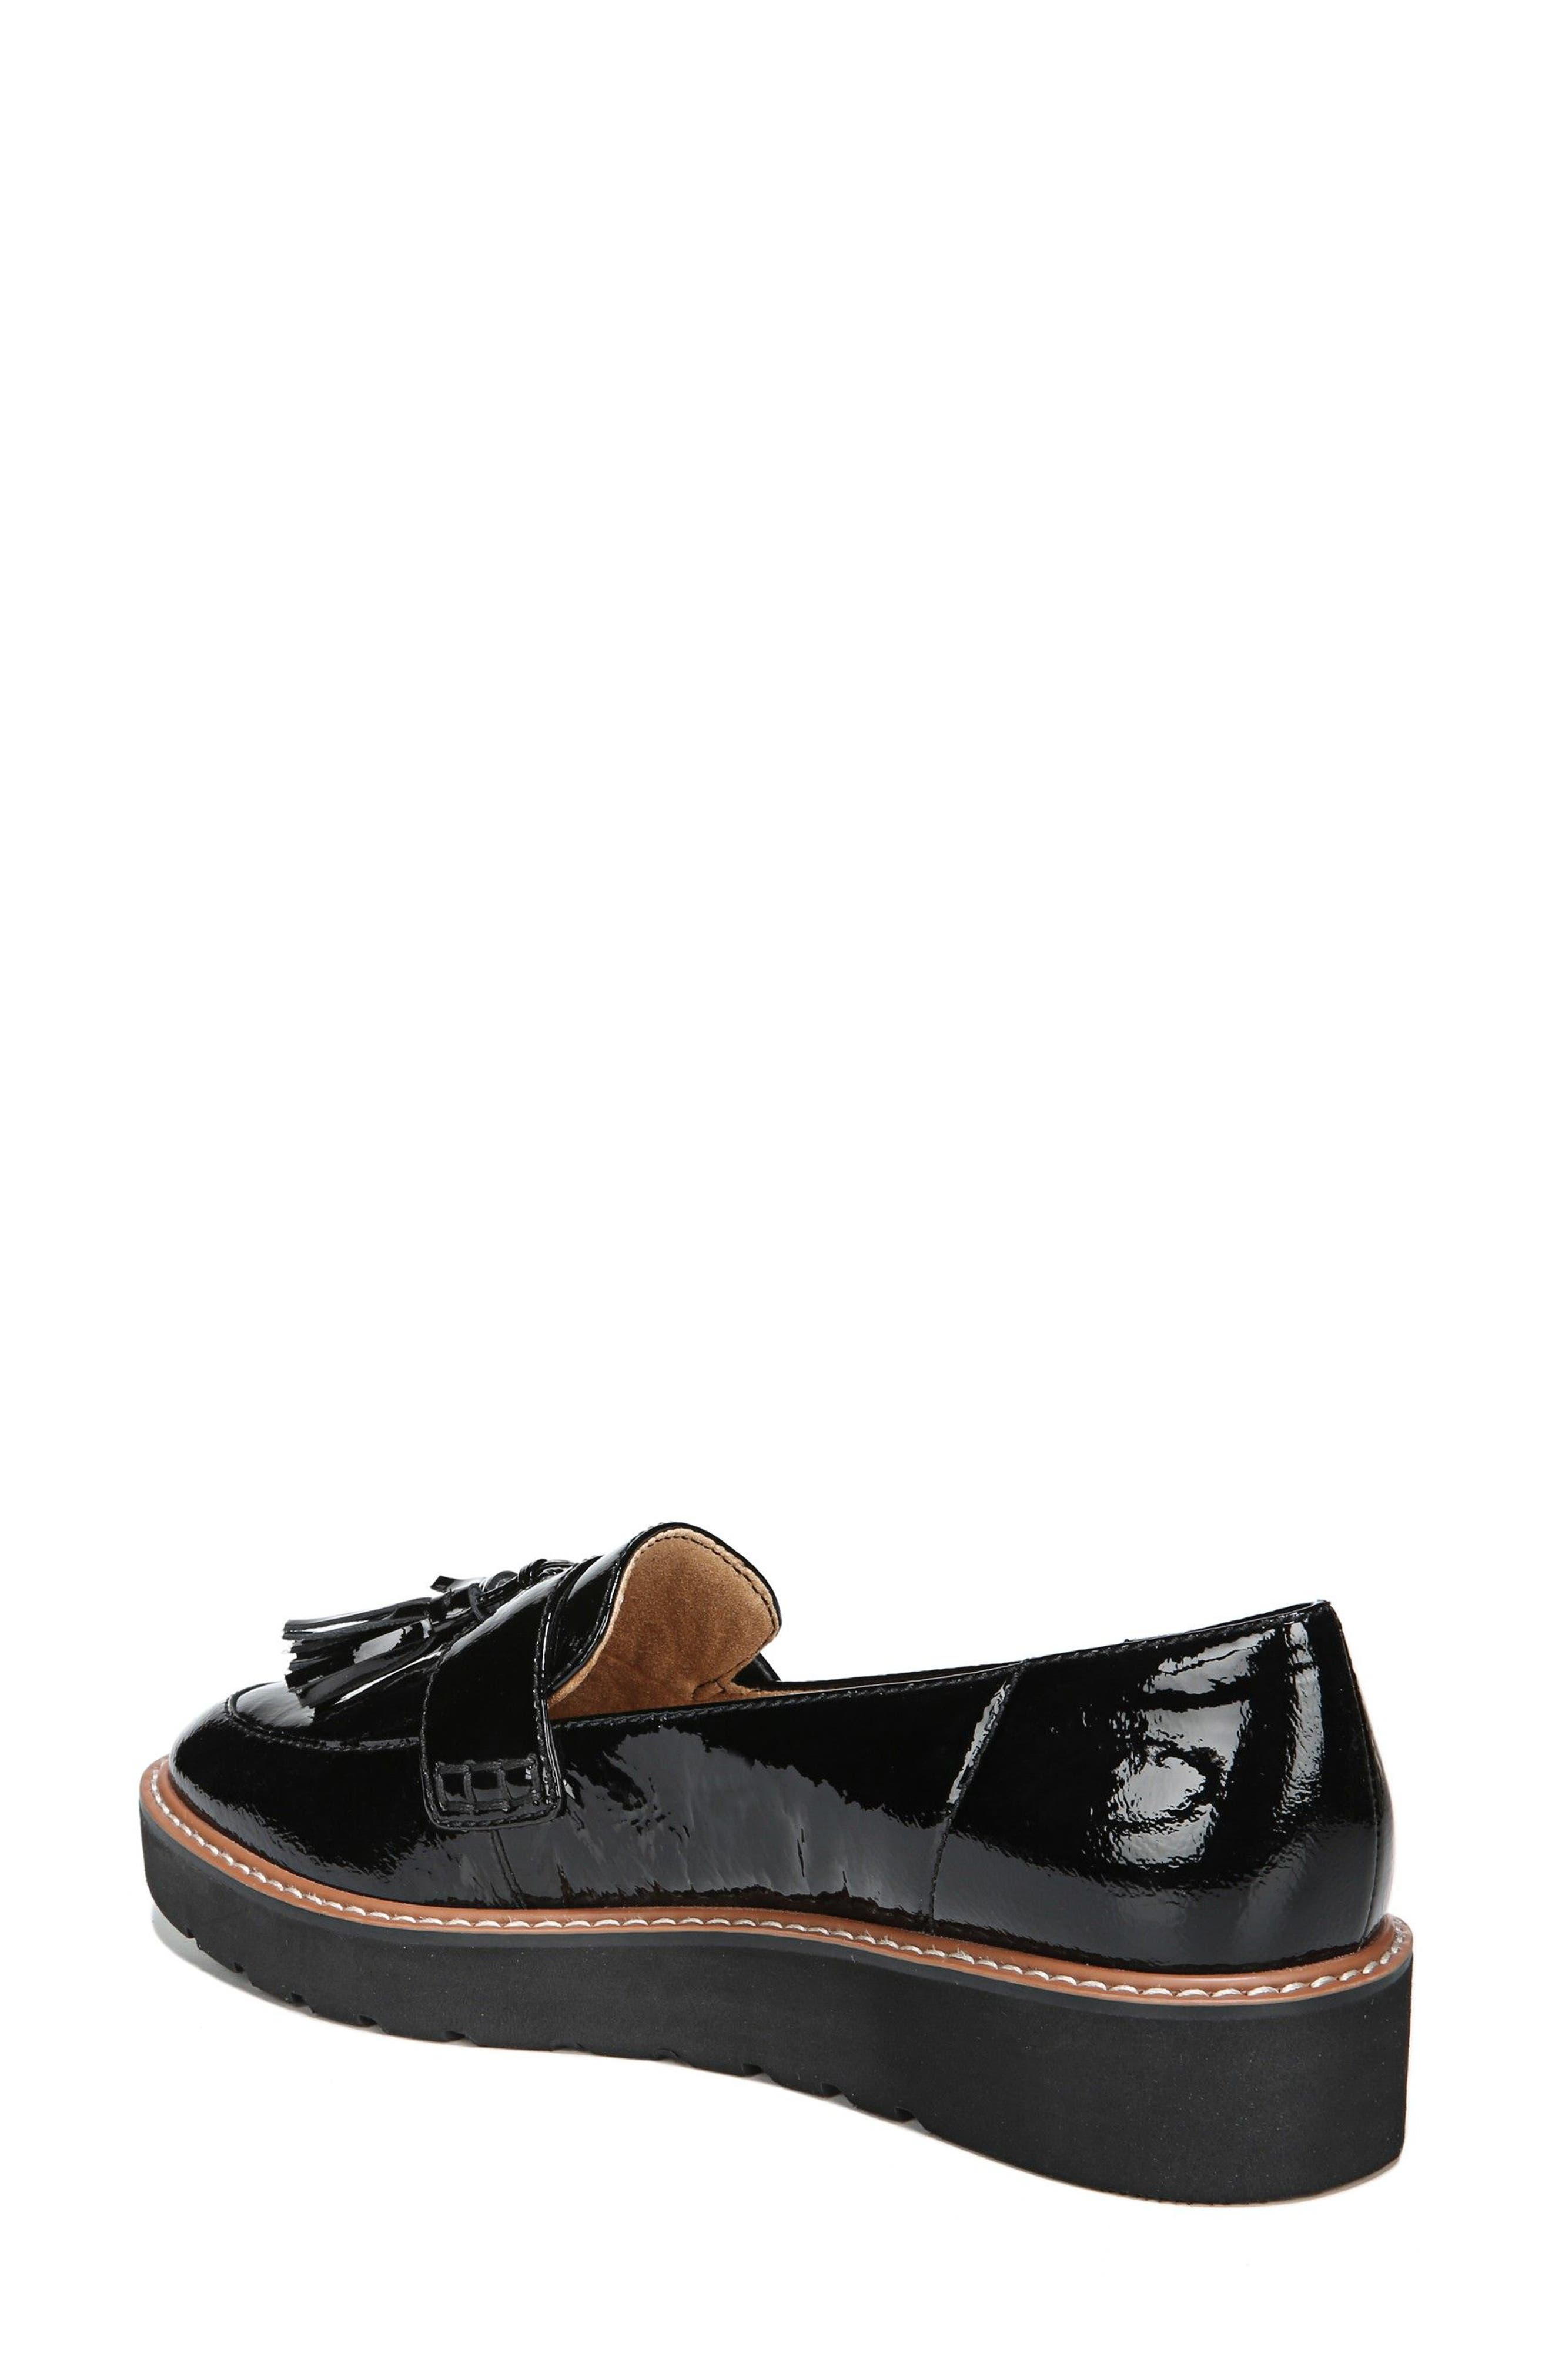 August Loafer,                             Alternate thumbnail 2, color,                             BLACK PATENT LEATHER